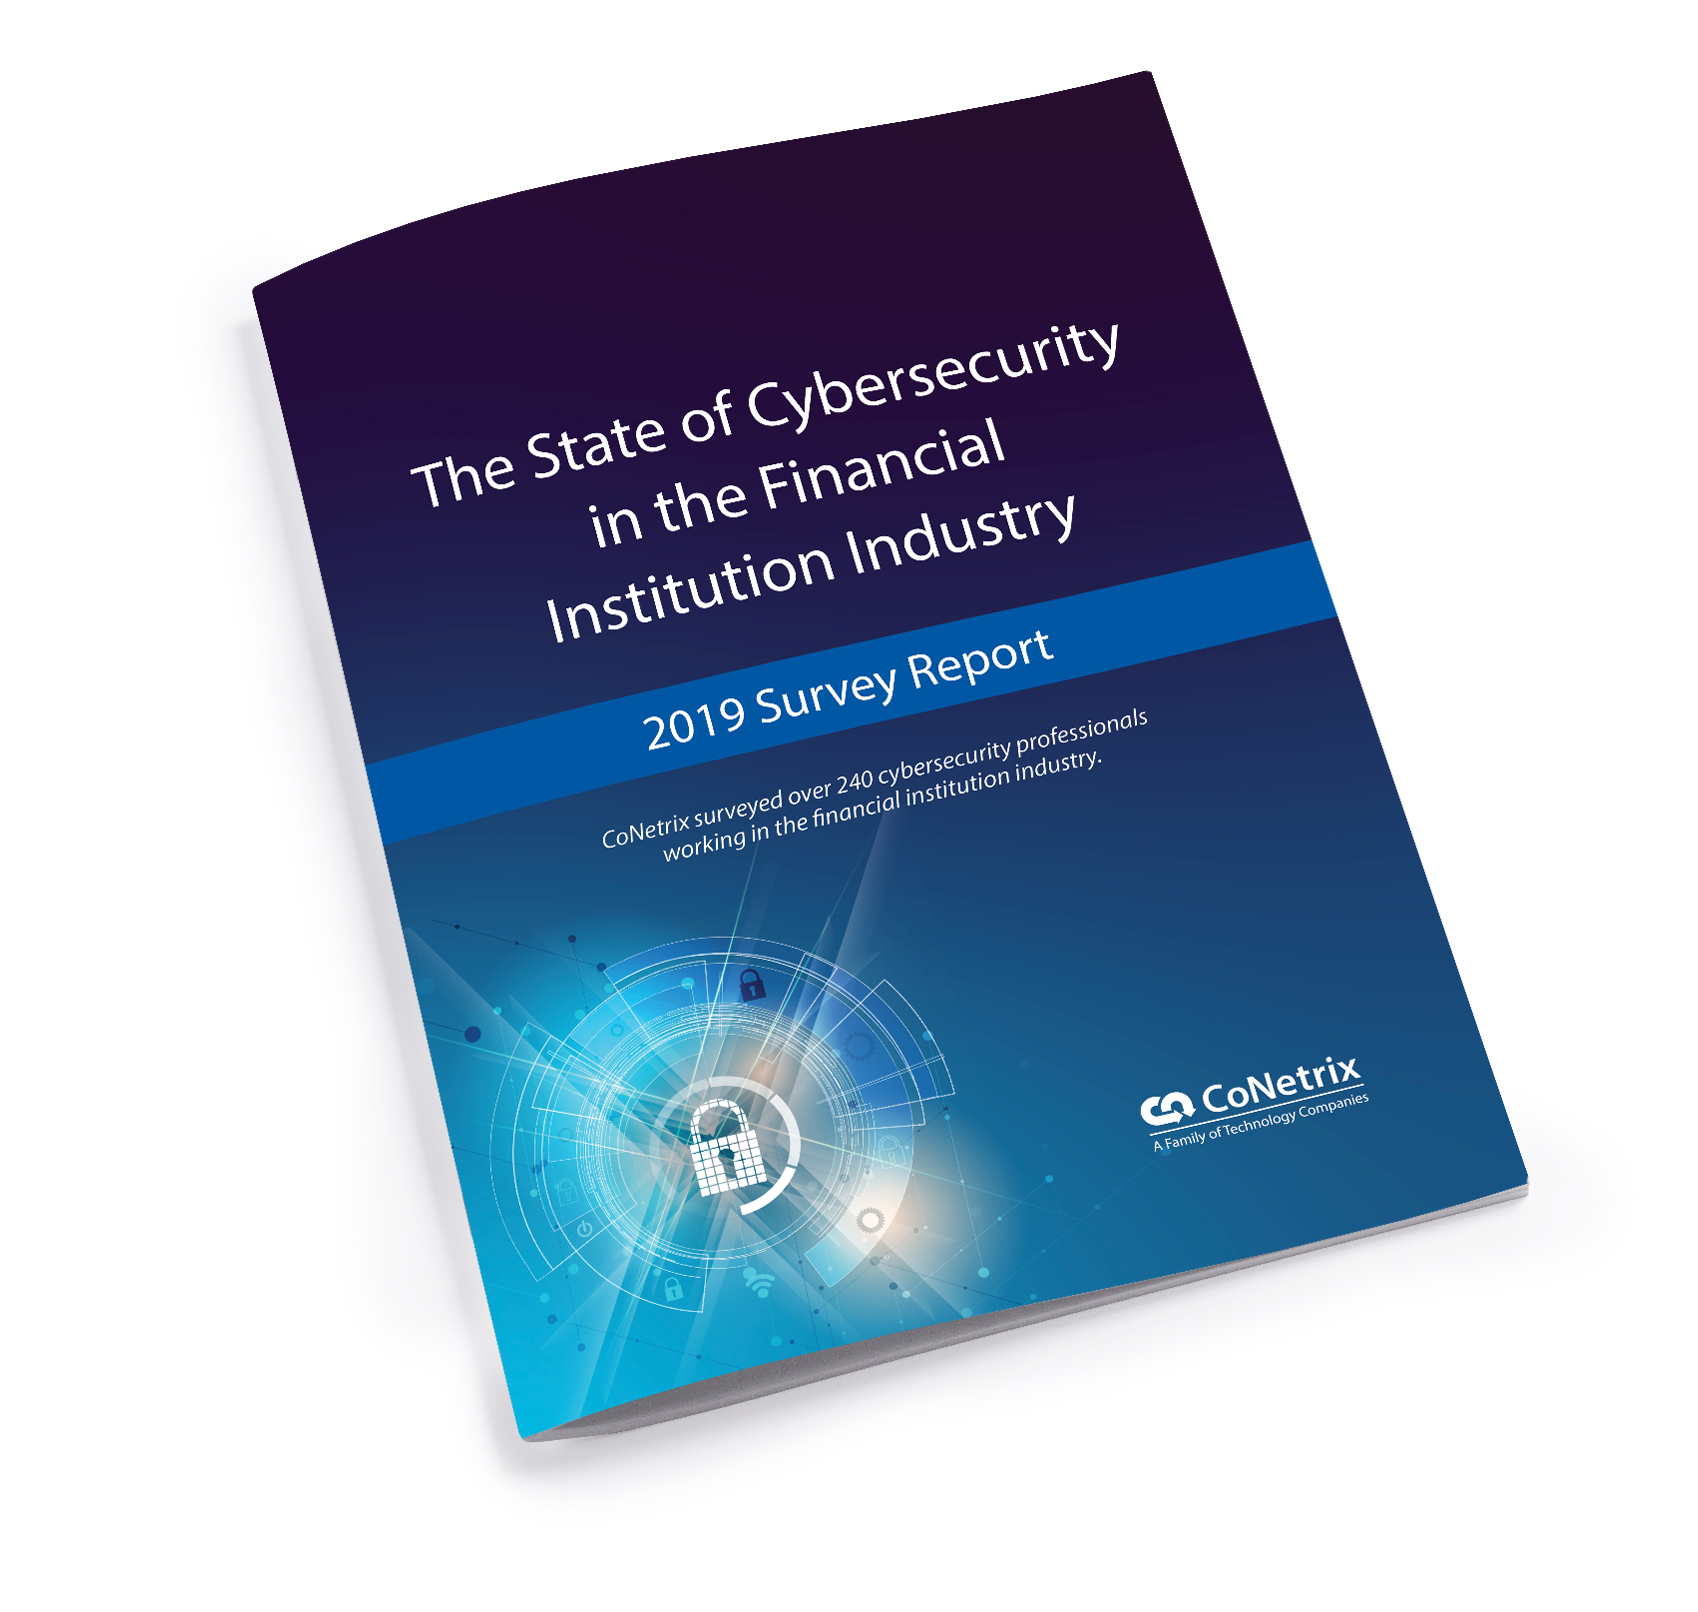 The State of Cybersecurity in the Financial Institution Industry 2019 Survey Report